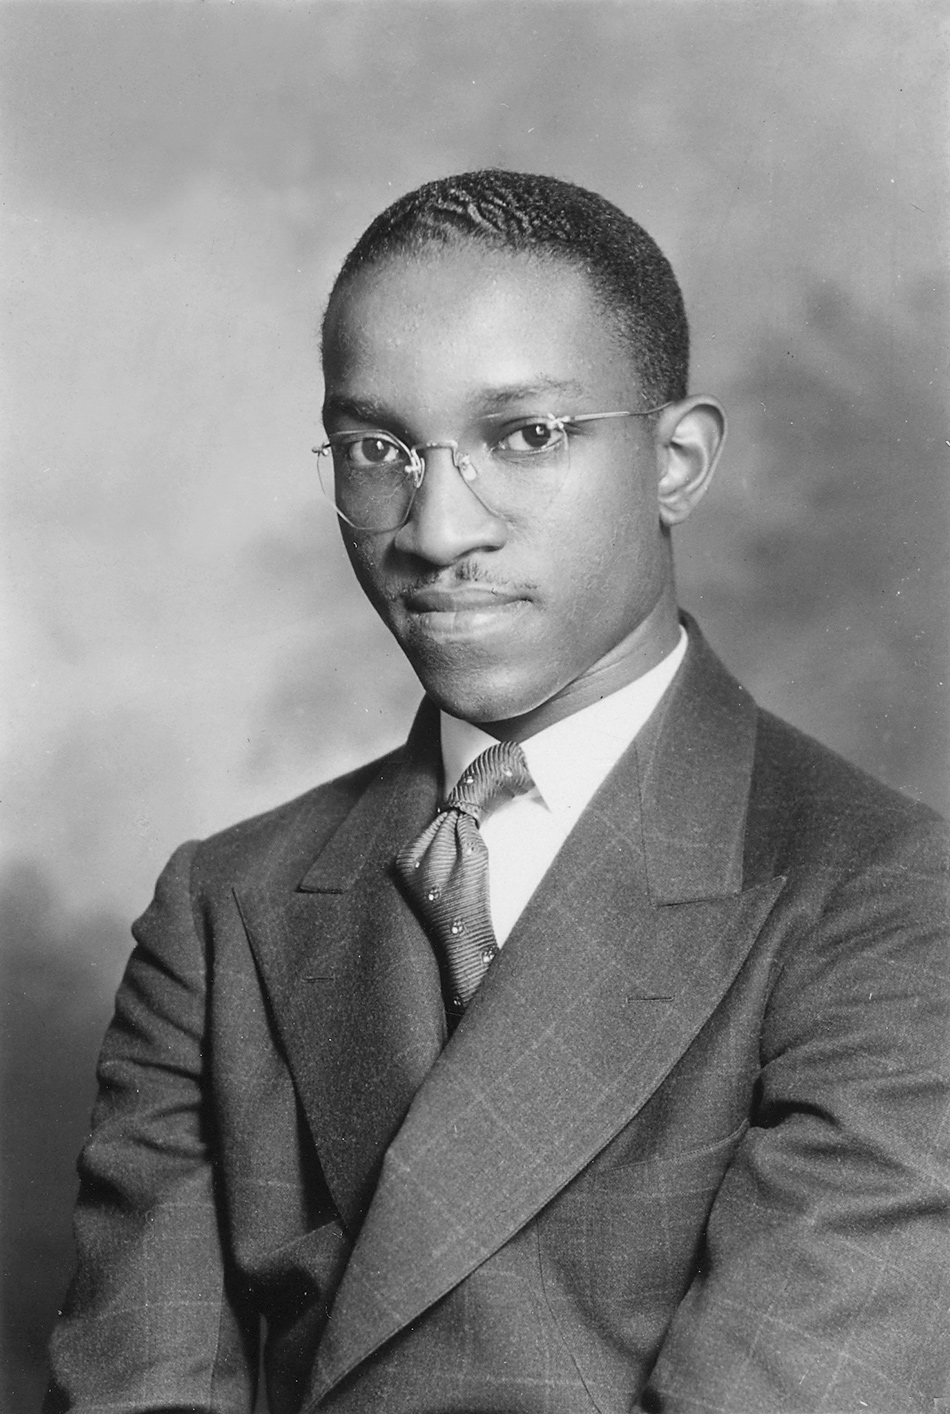 A photograph of John Hope Franklin from his Harvard University admissions file, circa 1935